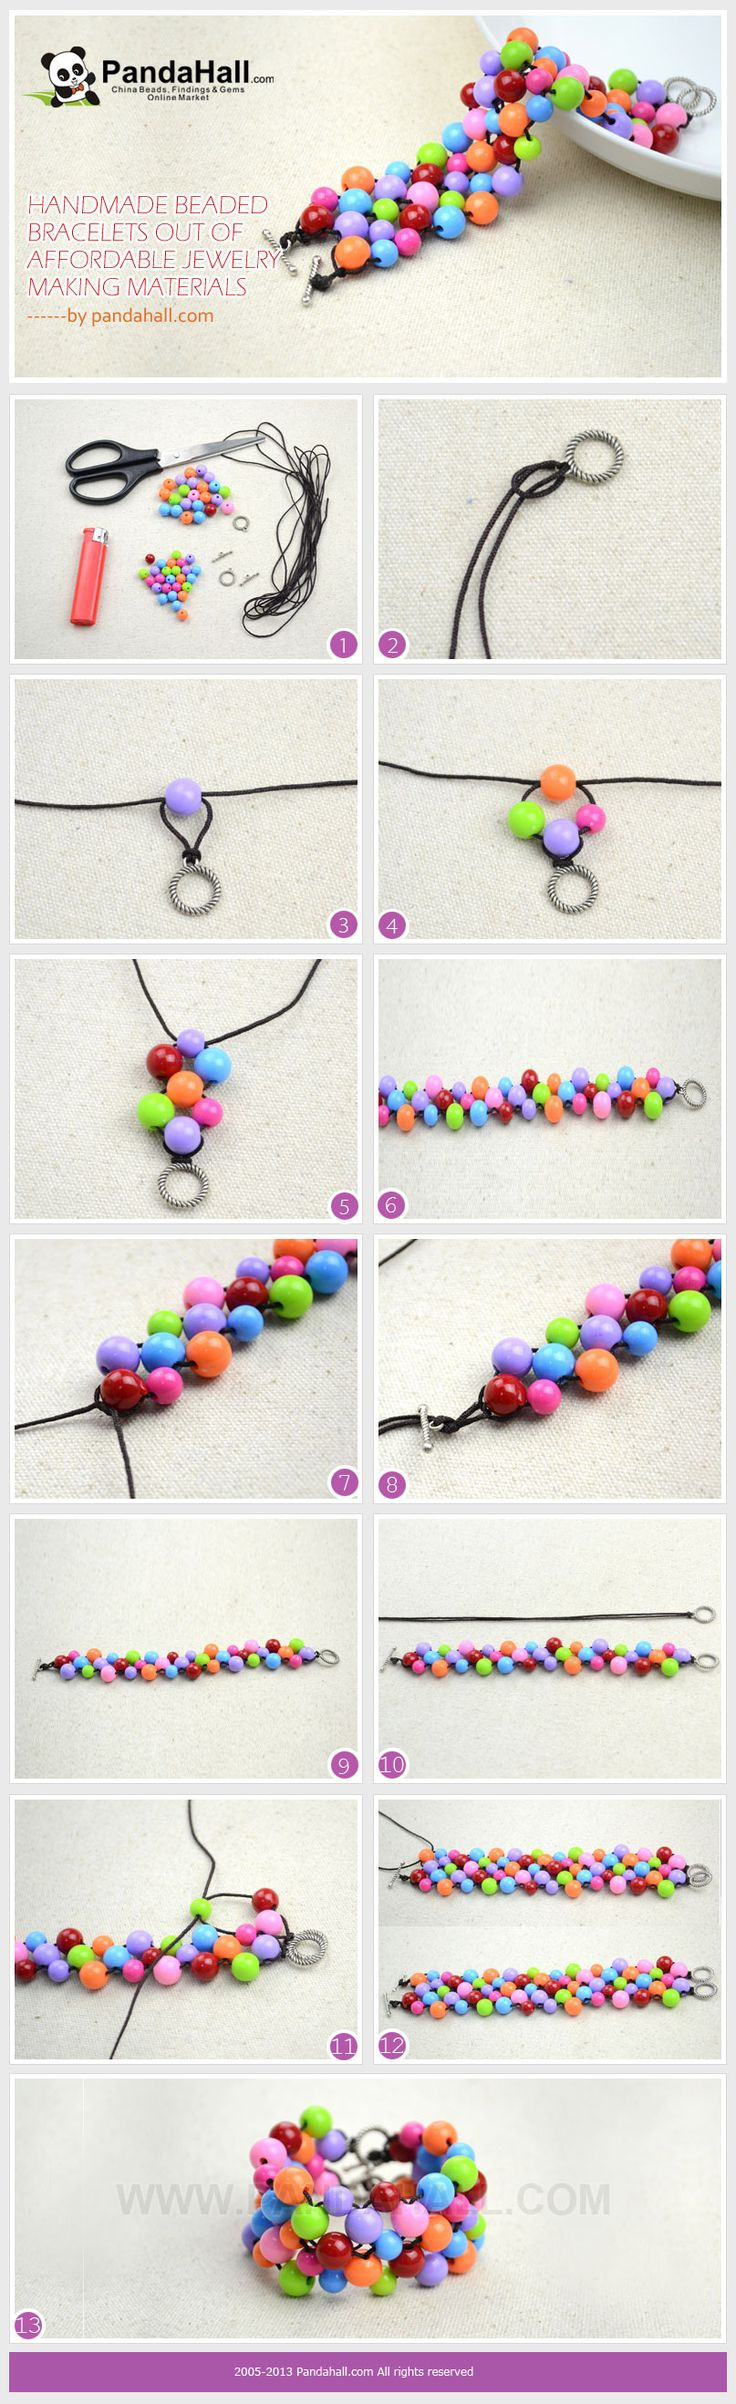 This post aims at demonstrating how you can make handmade beaded bracelets in a simple way while introducing some of inexpensive jewelry making materials into your crafts.